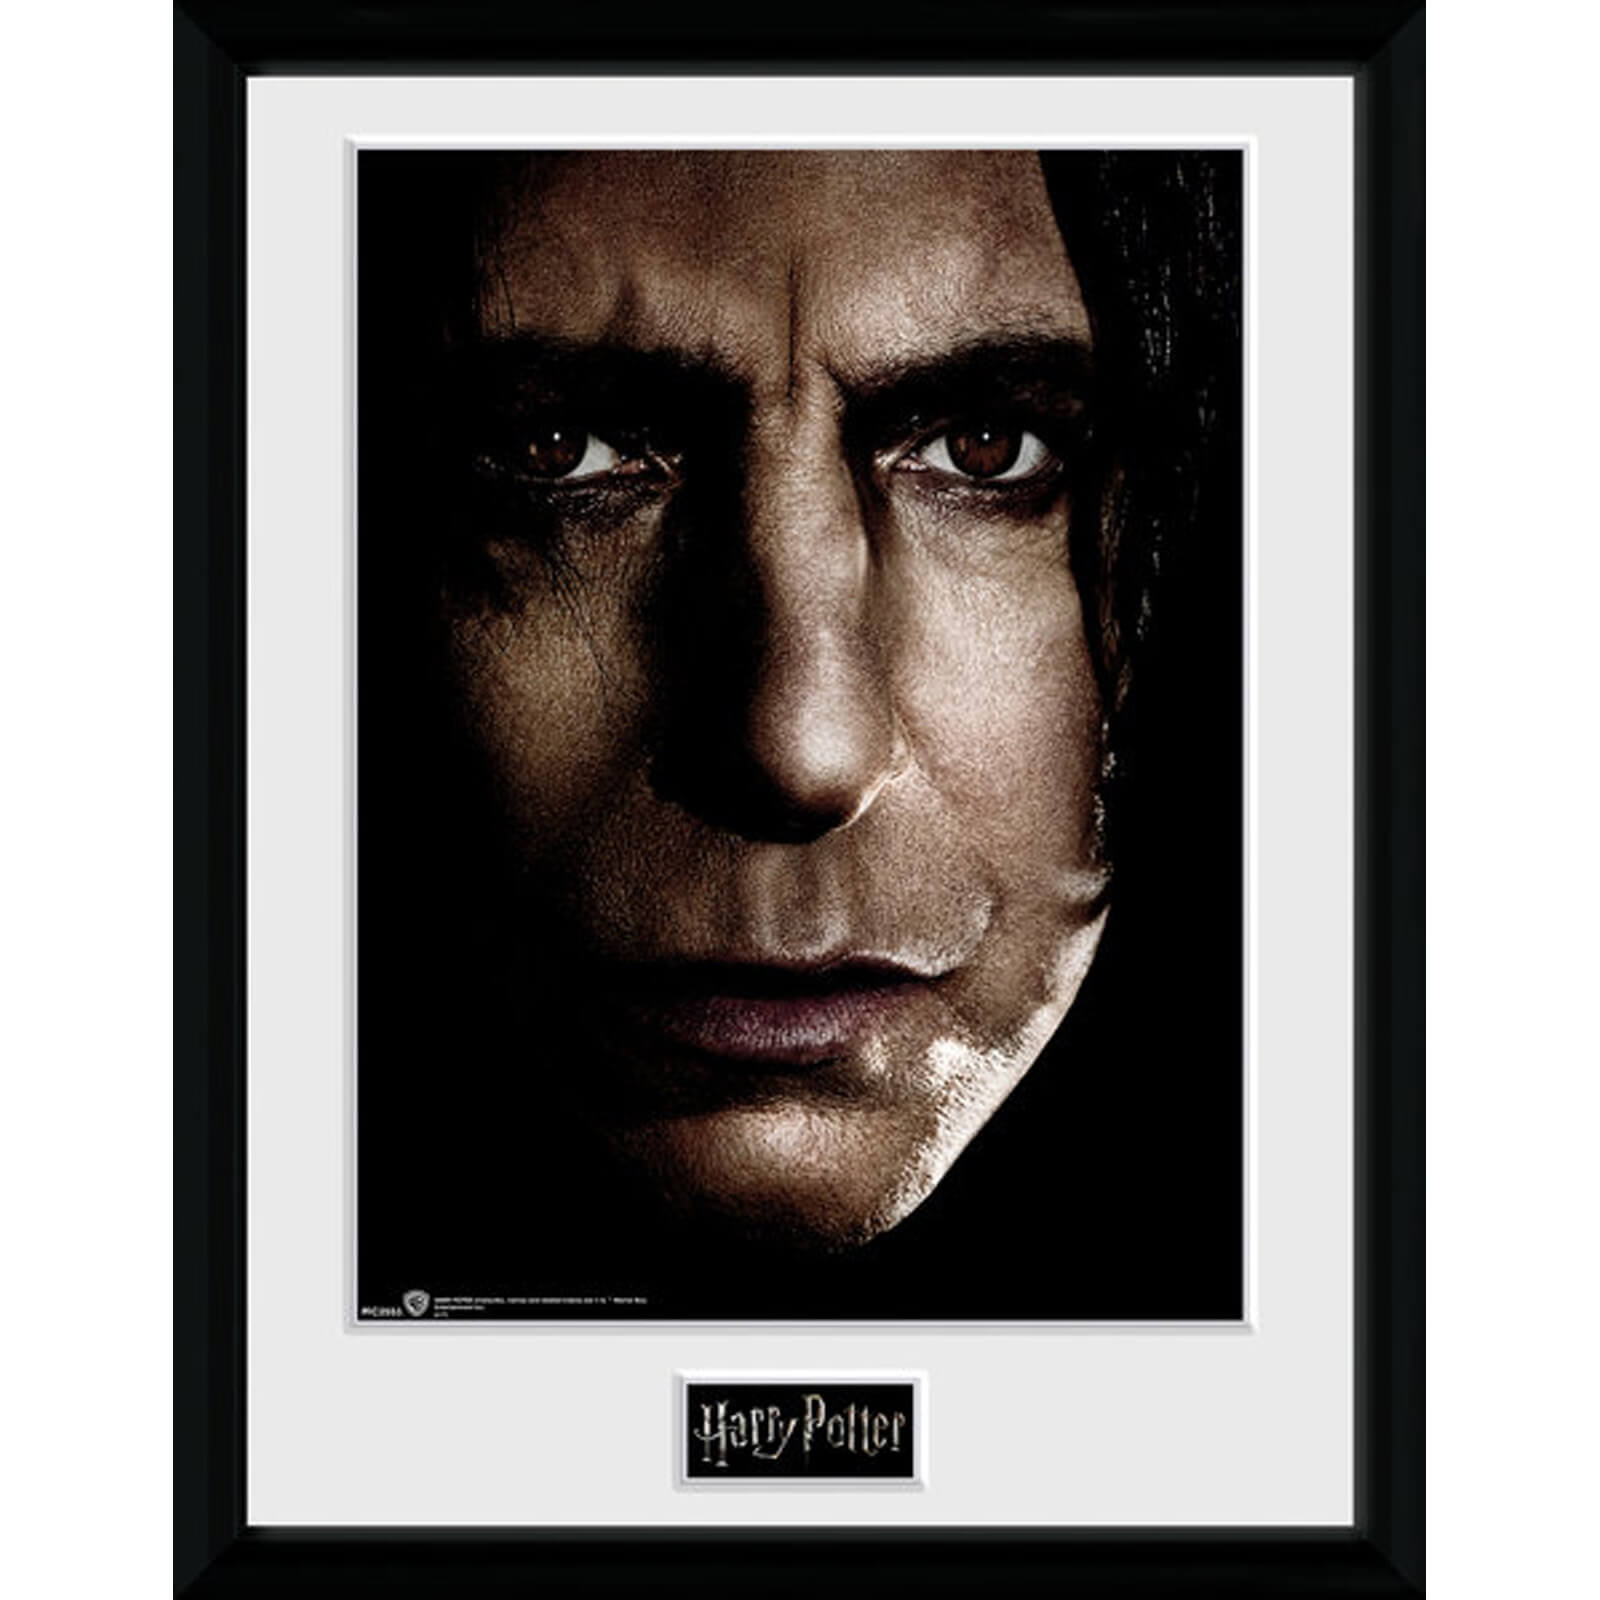 Harry Potter Snape Face 12 x 16 Inches Framed Photograph